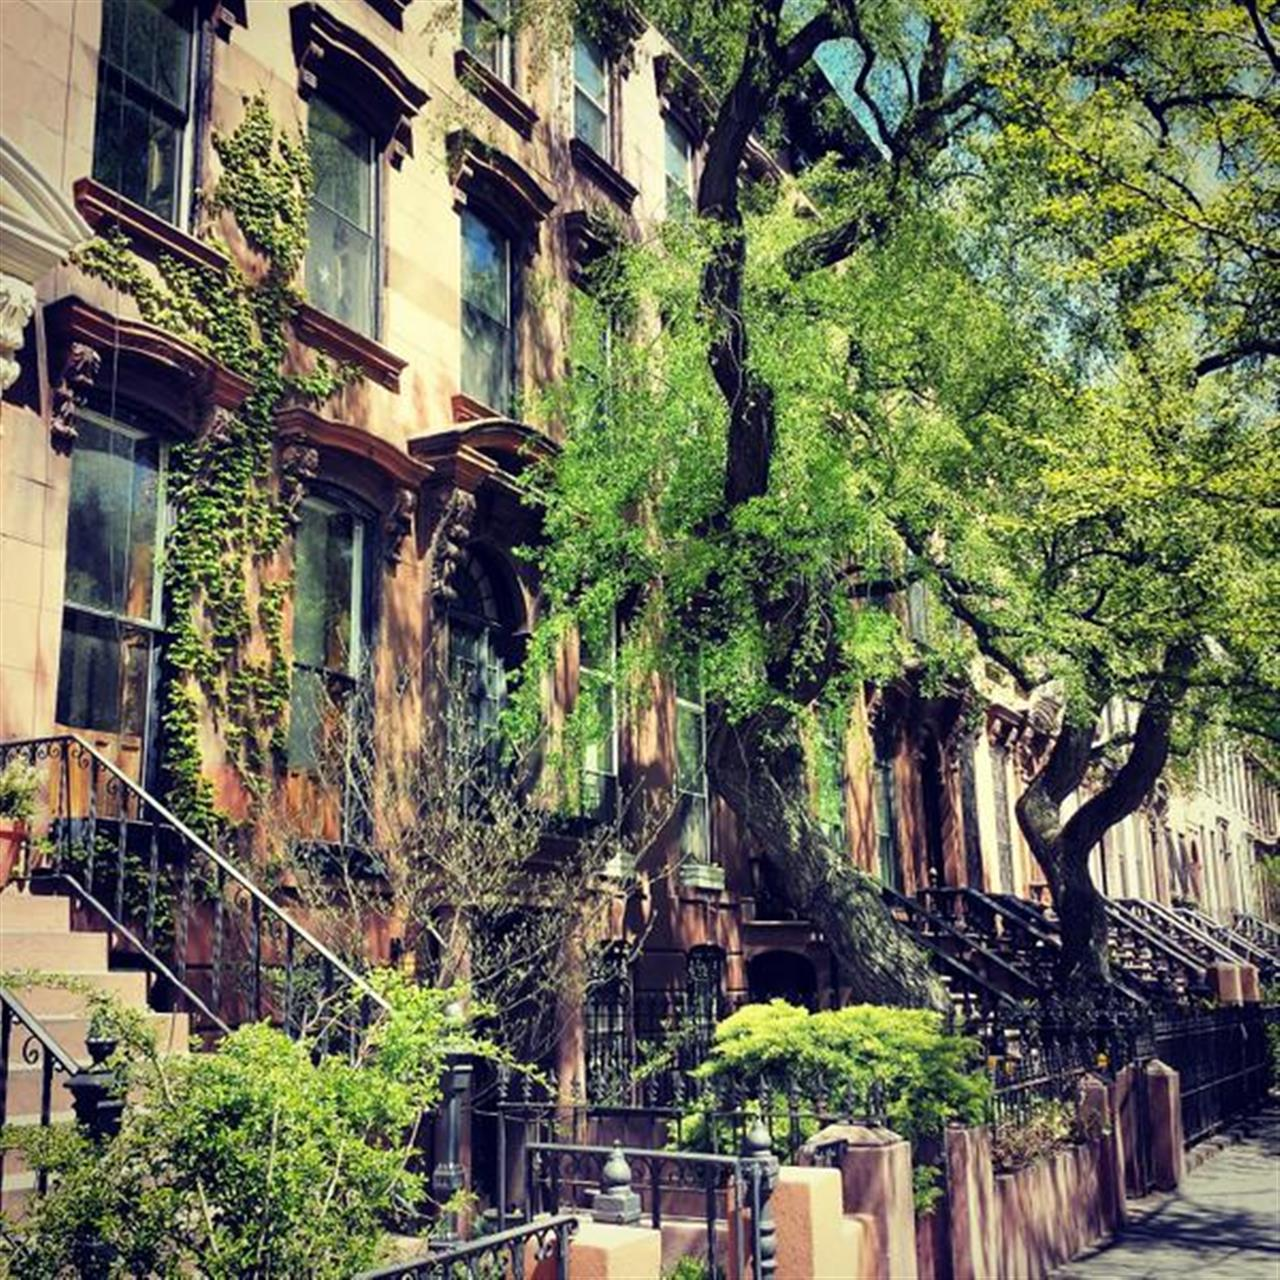 Somehow these trees survive this concrete jungle #nyc #prospectheights #bkoriginal #leadingRElocal